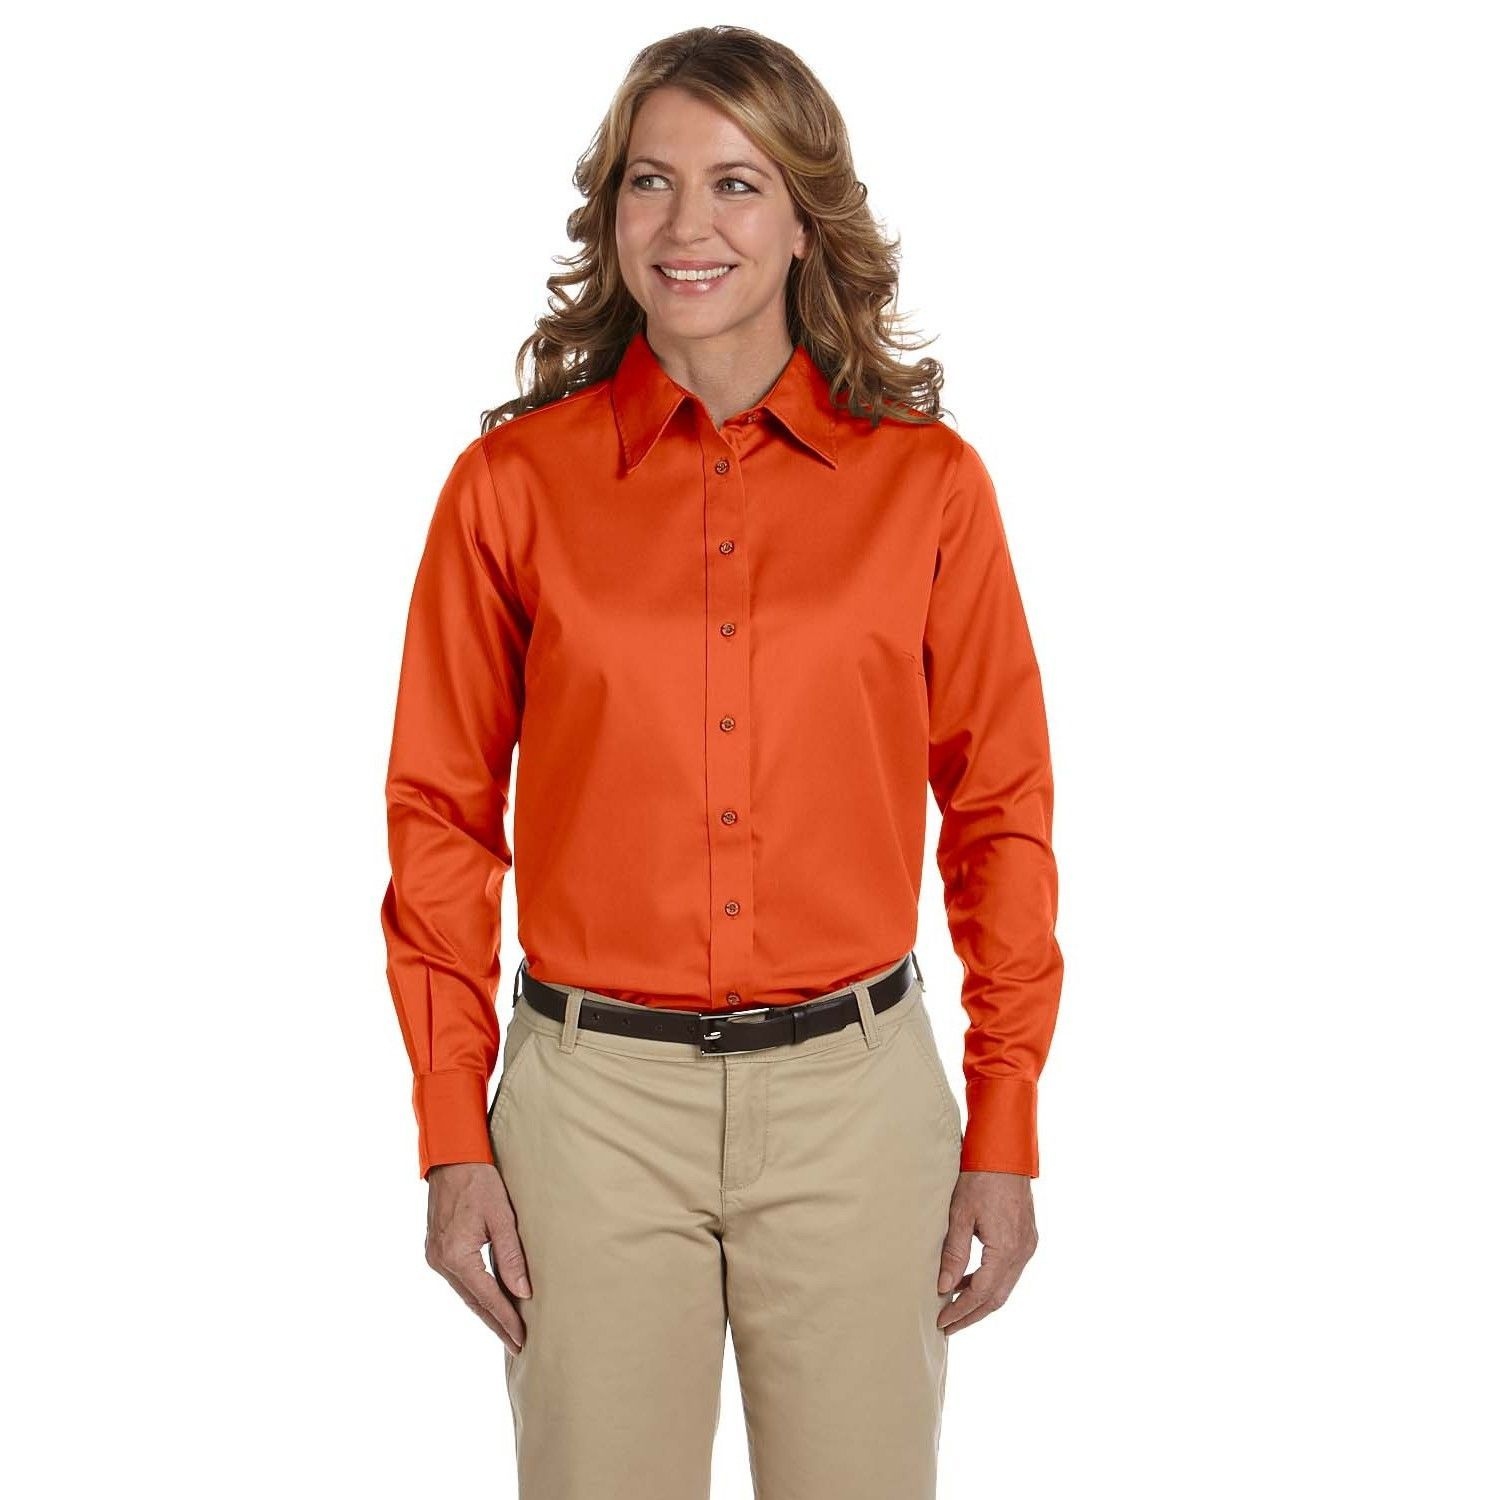 Easy Blend Women's Long-Sleeve Twill With Stain-Release Team Shirt